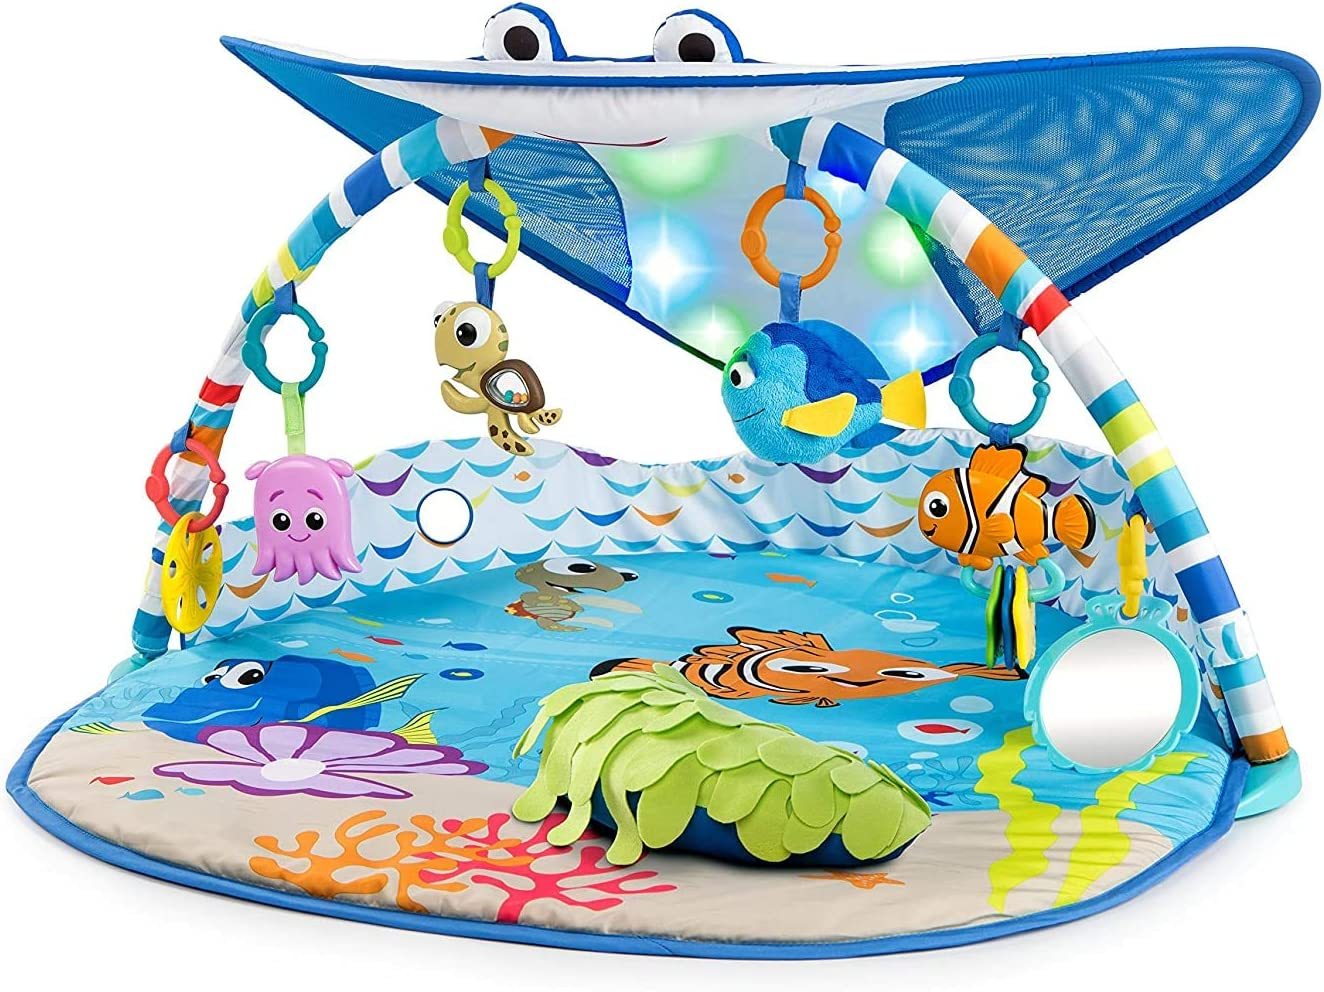 Xiangtat Baby Finding Nemo Ray Ocean Lights & Music Gym, Baby Kick 'n Play Gym Toys Colourful Musical Play Gym Playgym Play Mats Playmat Animal